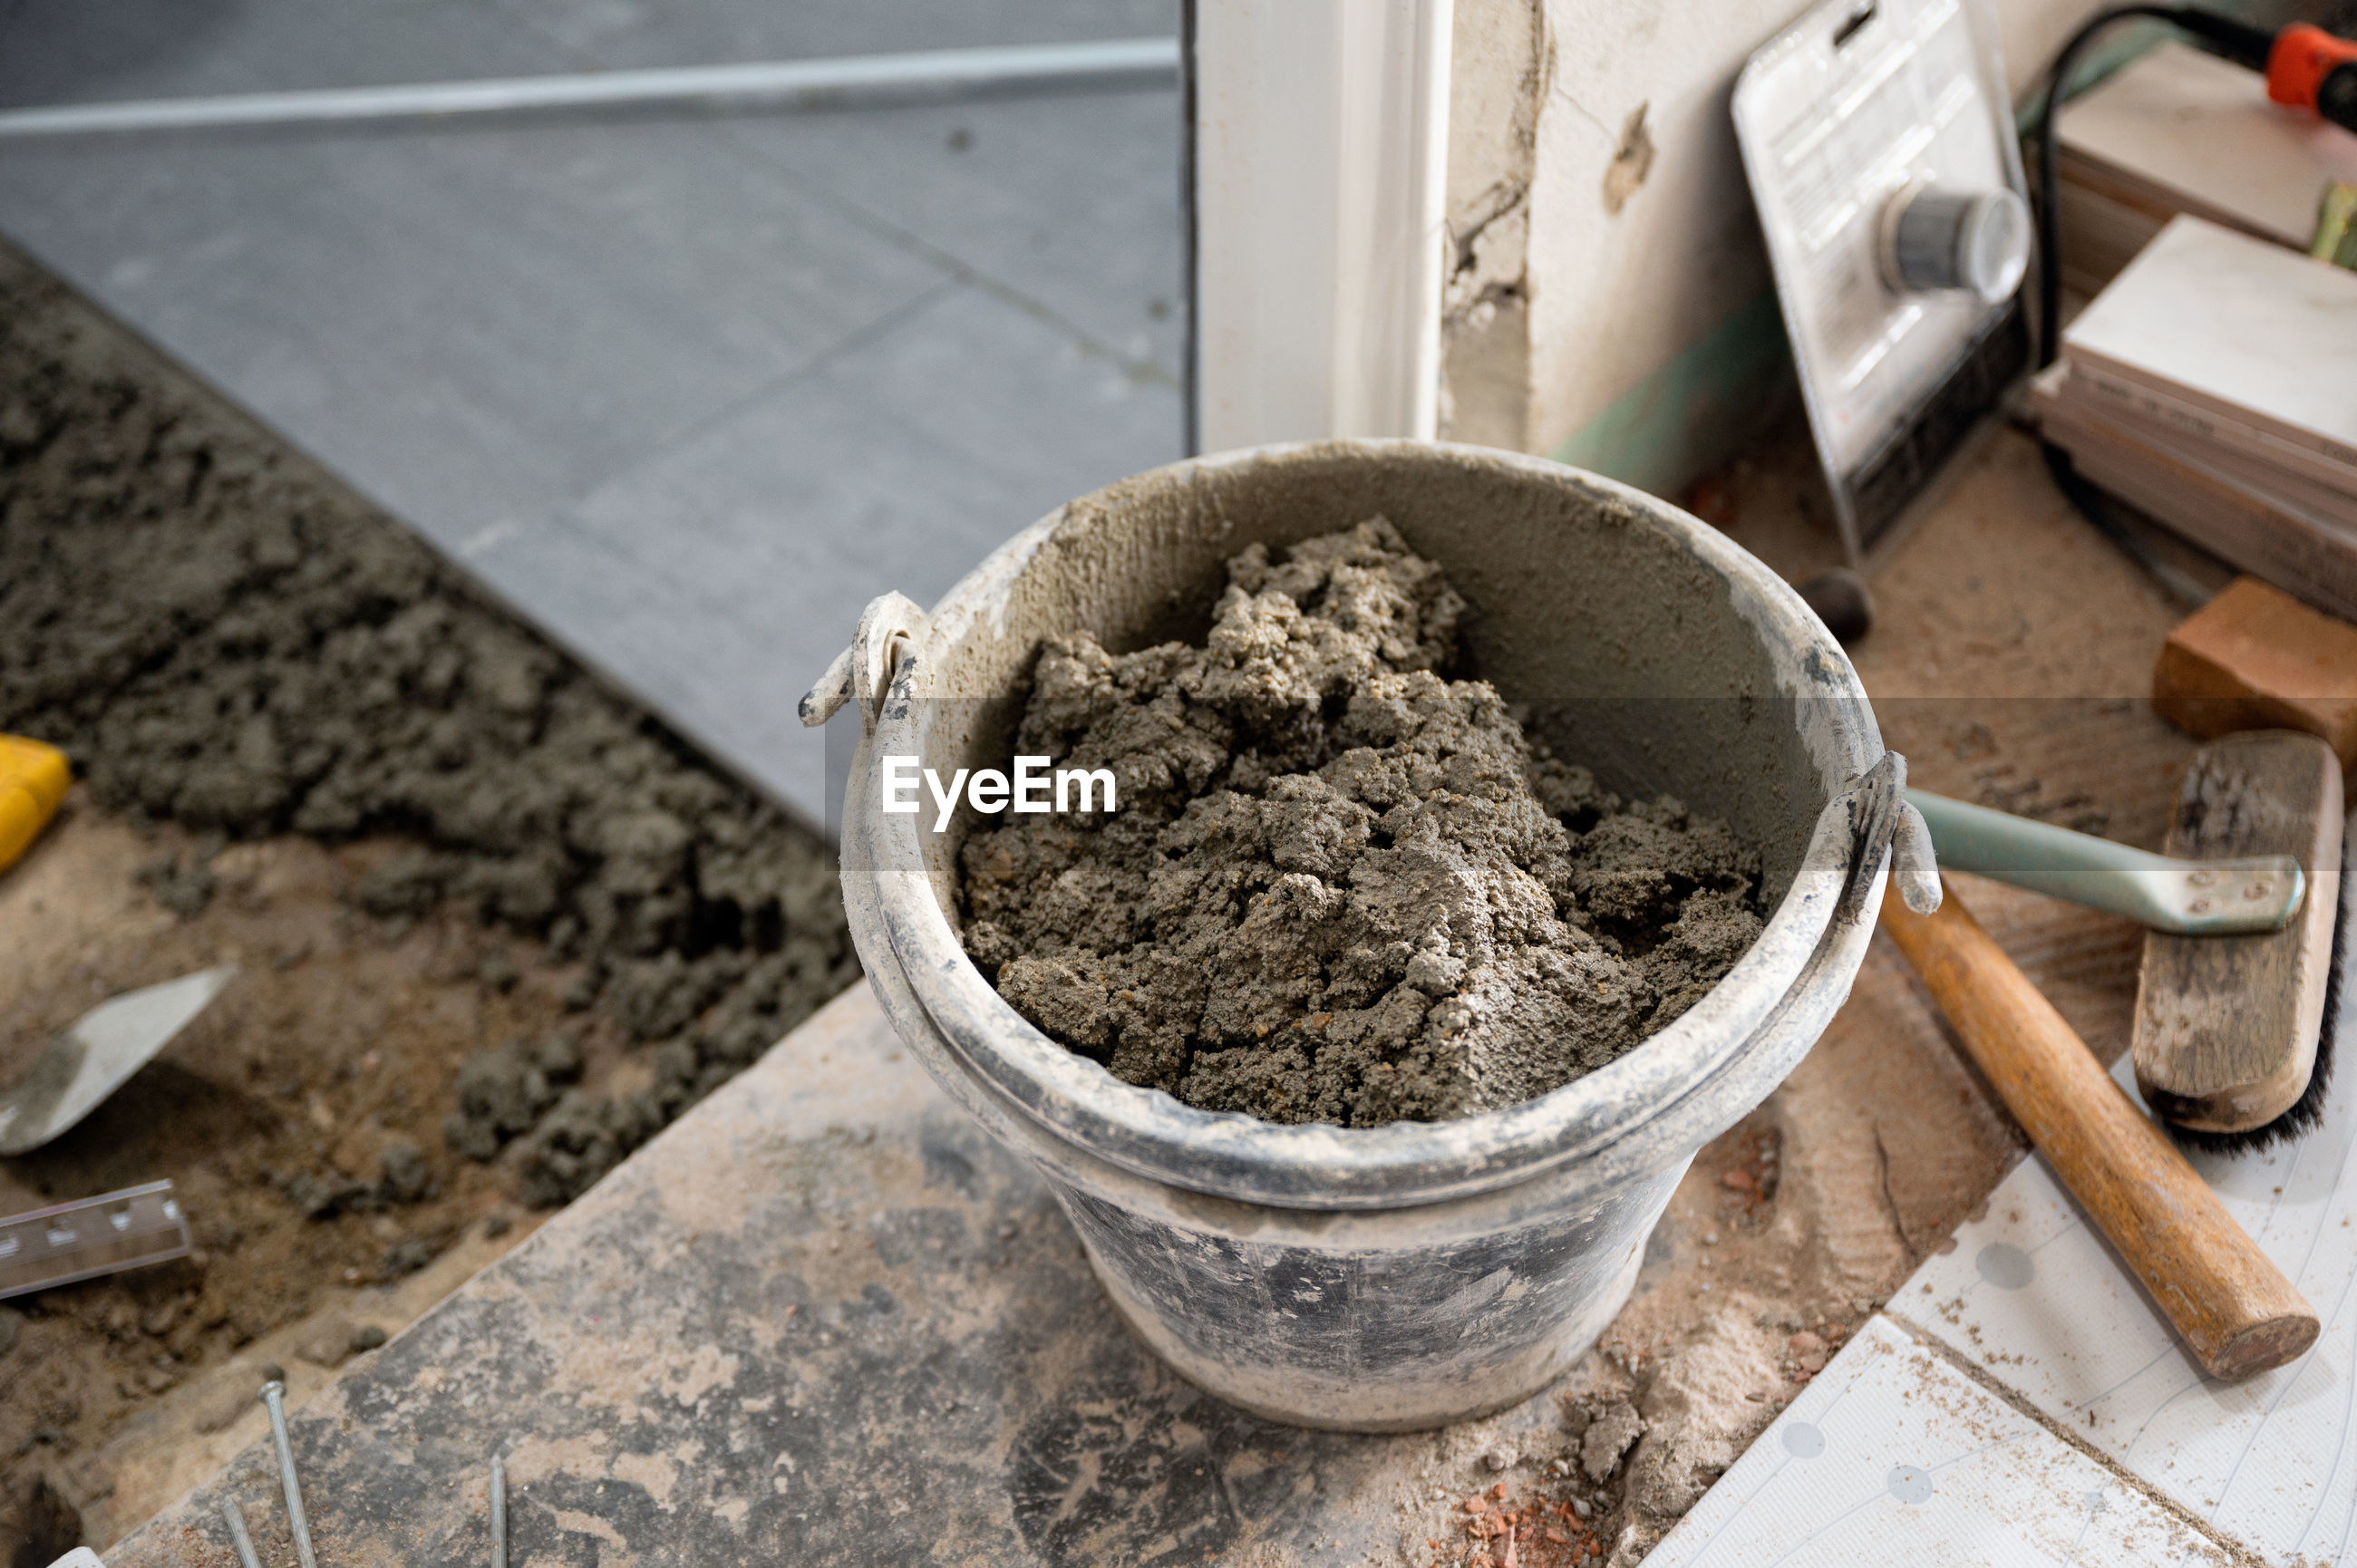 HIGH ANGLE VIEW OF FOOD IN CONTAINER ON POTTED PLANT